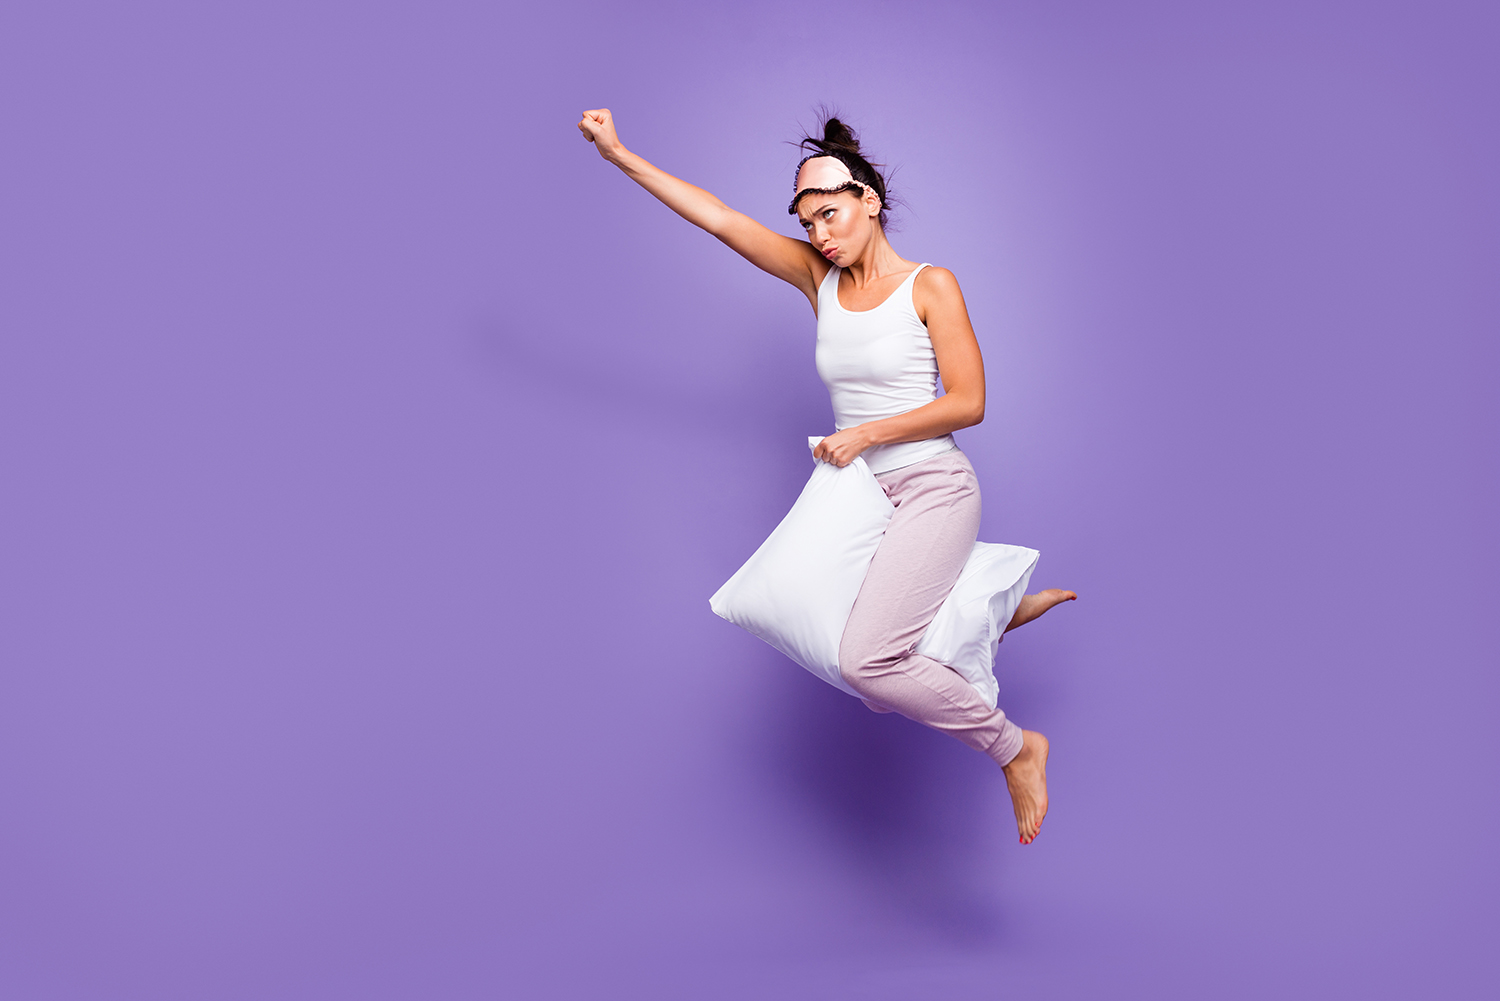 Woman flying through air on pillow